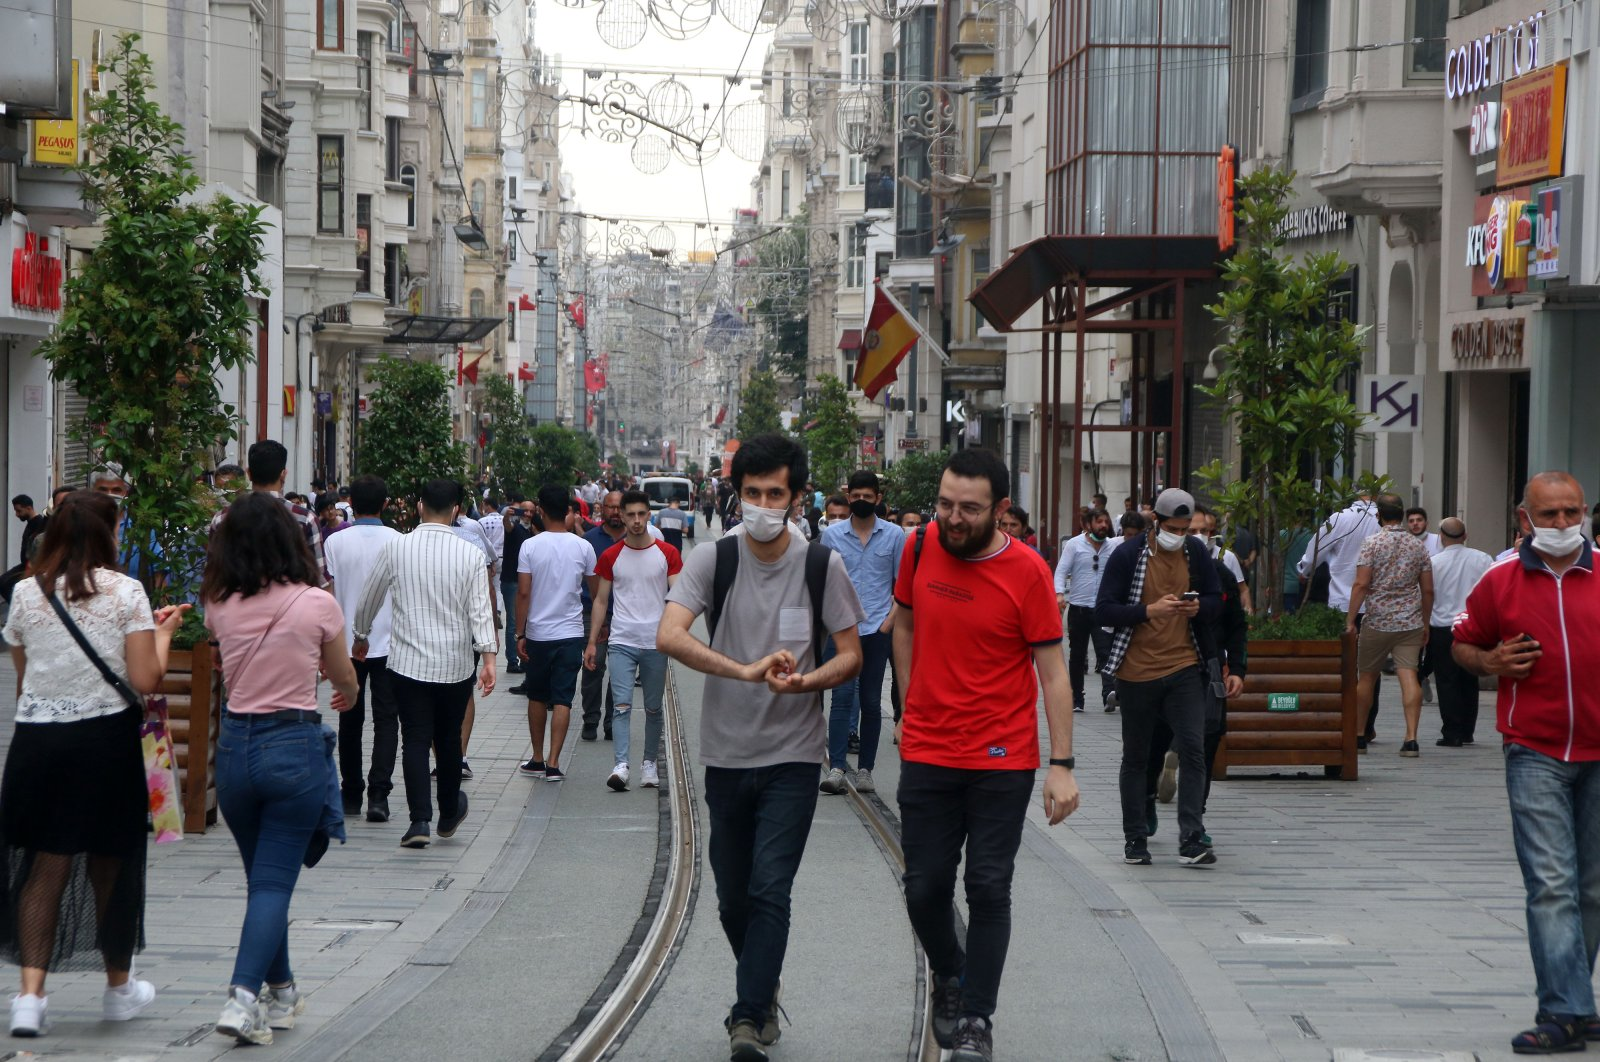 People walking on İstiklal Avenue with and without masks, in Istanbul, Turkey, June 15, 2020. (DHA Photo)